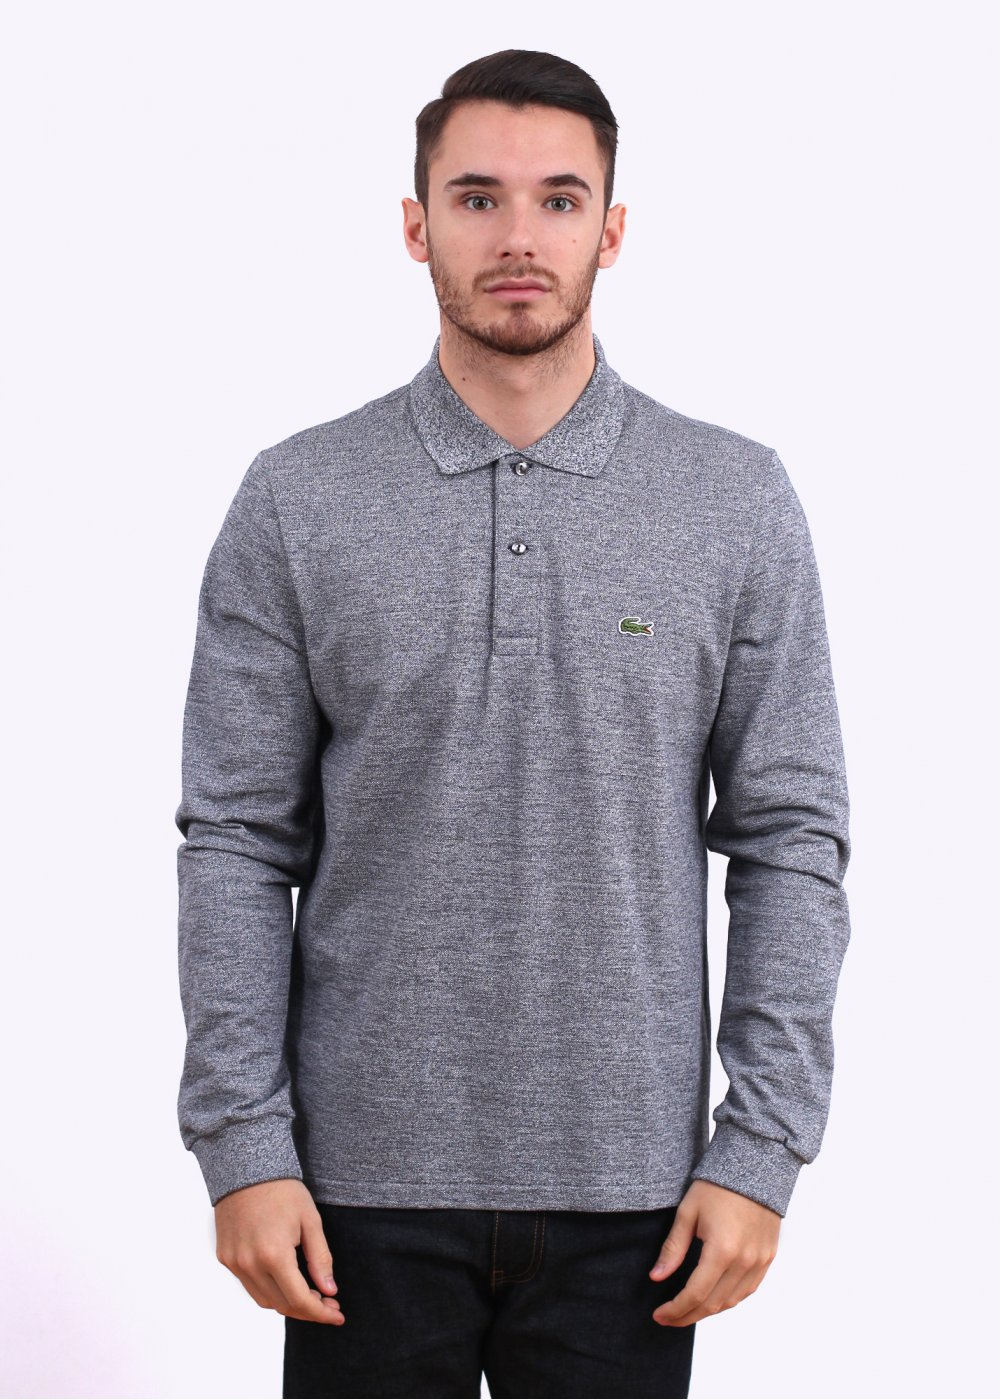 55b8812417d17 Lacoste Long Sleeve Best Polo - Charcoal